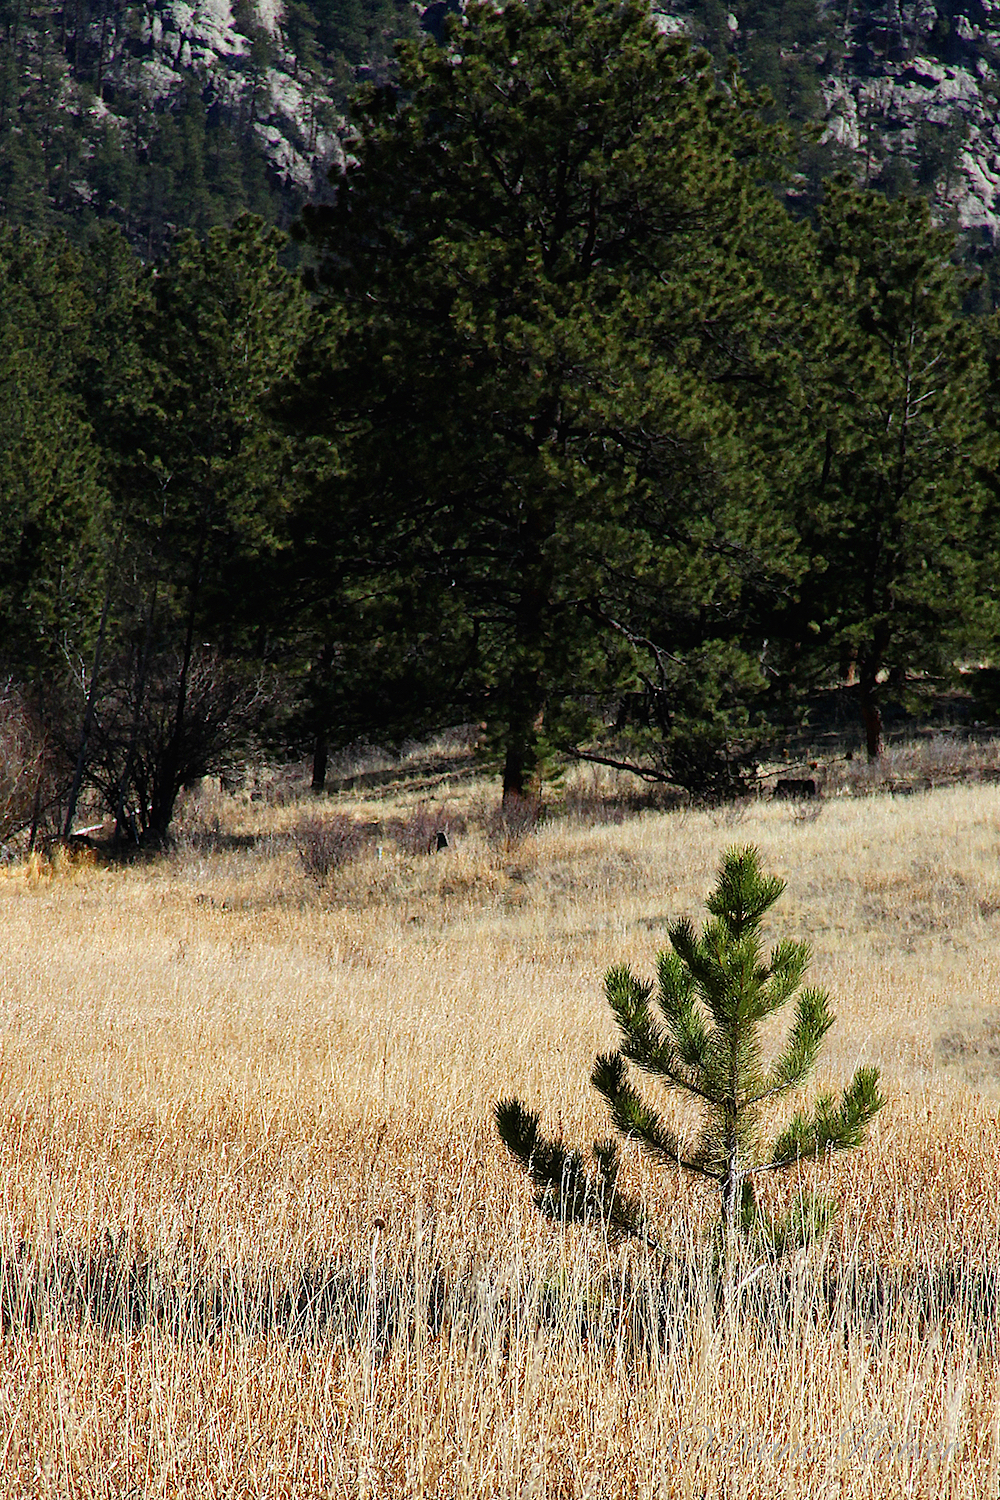 There are pine trees, lots of grass and a few trees that I could not identify that were still waiting for their spring leaves.